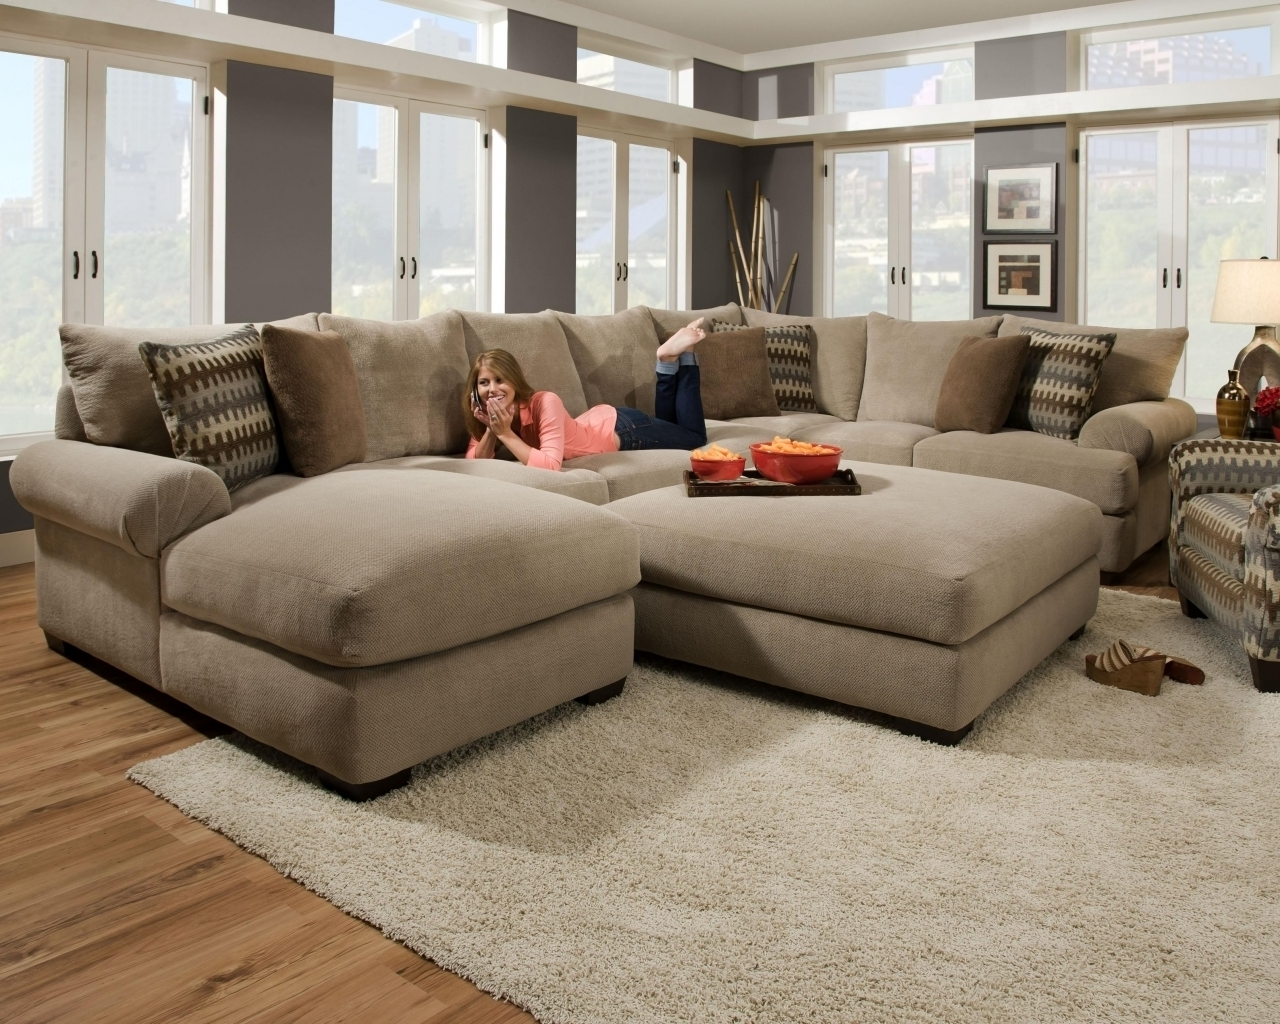 Amazing Sectional Sofa With Oversized Ottoman 59 For Your Best With Regard To Most Current Sectional Sofas With Oversized Ottoman (View 1 of 15)